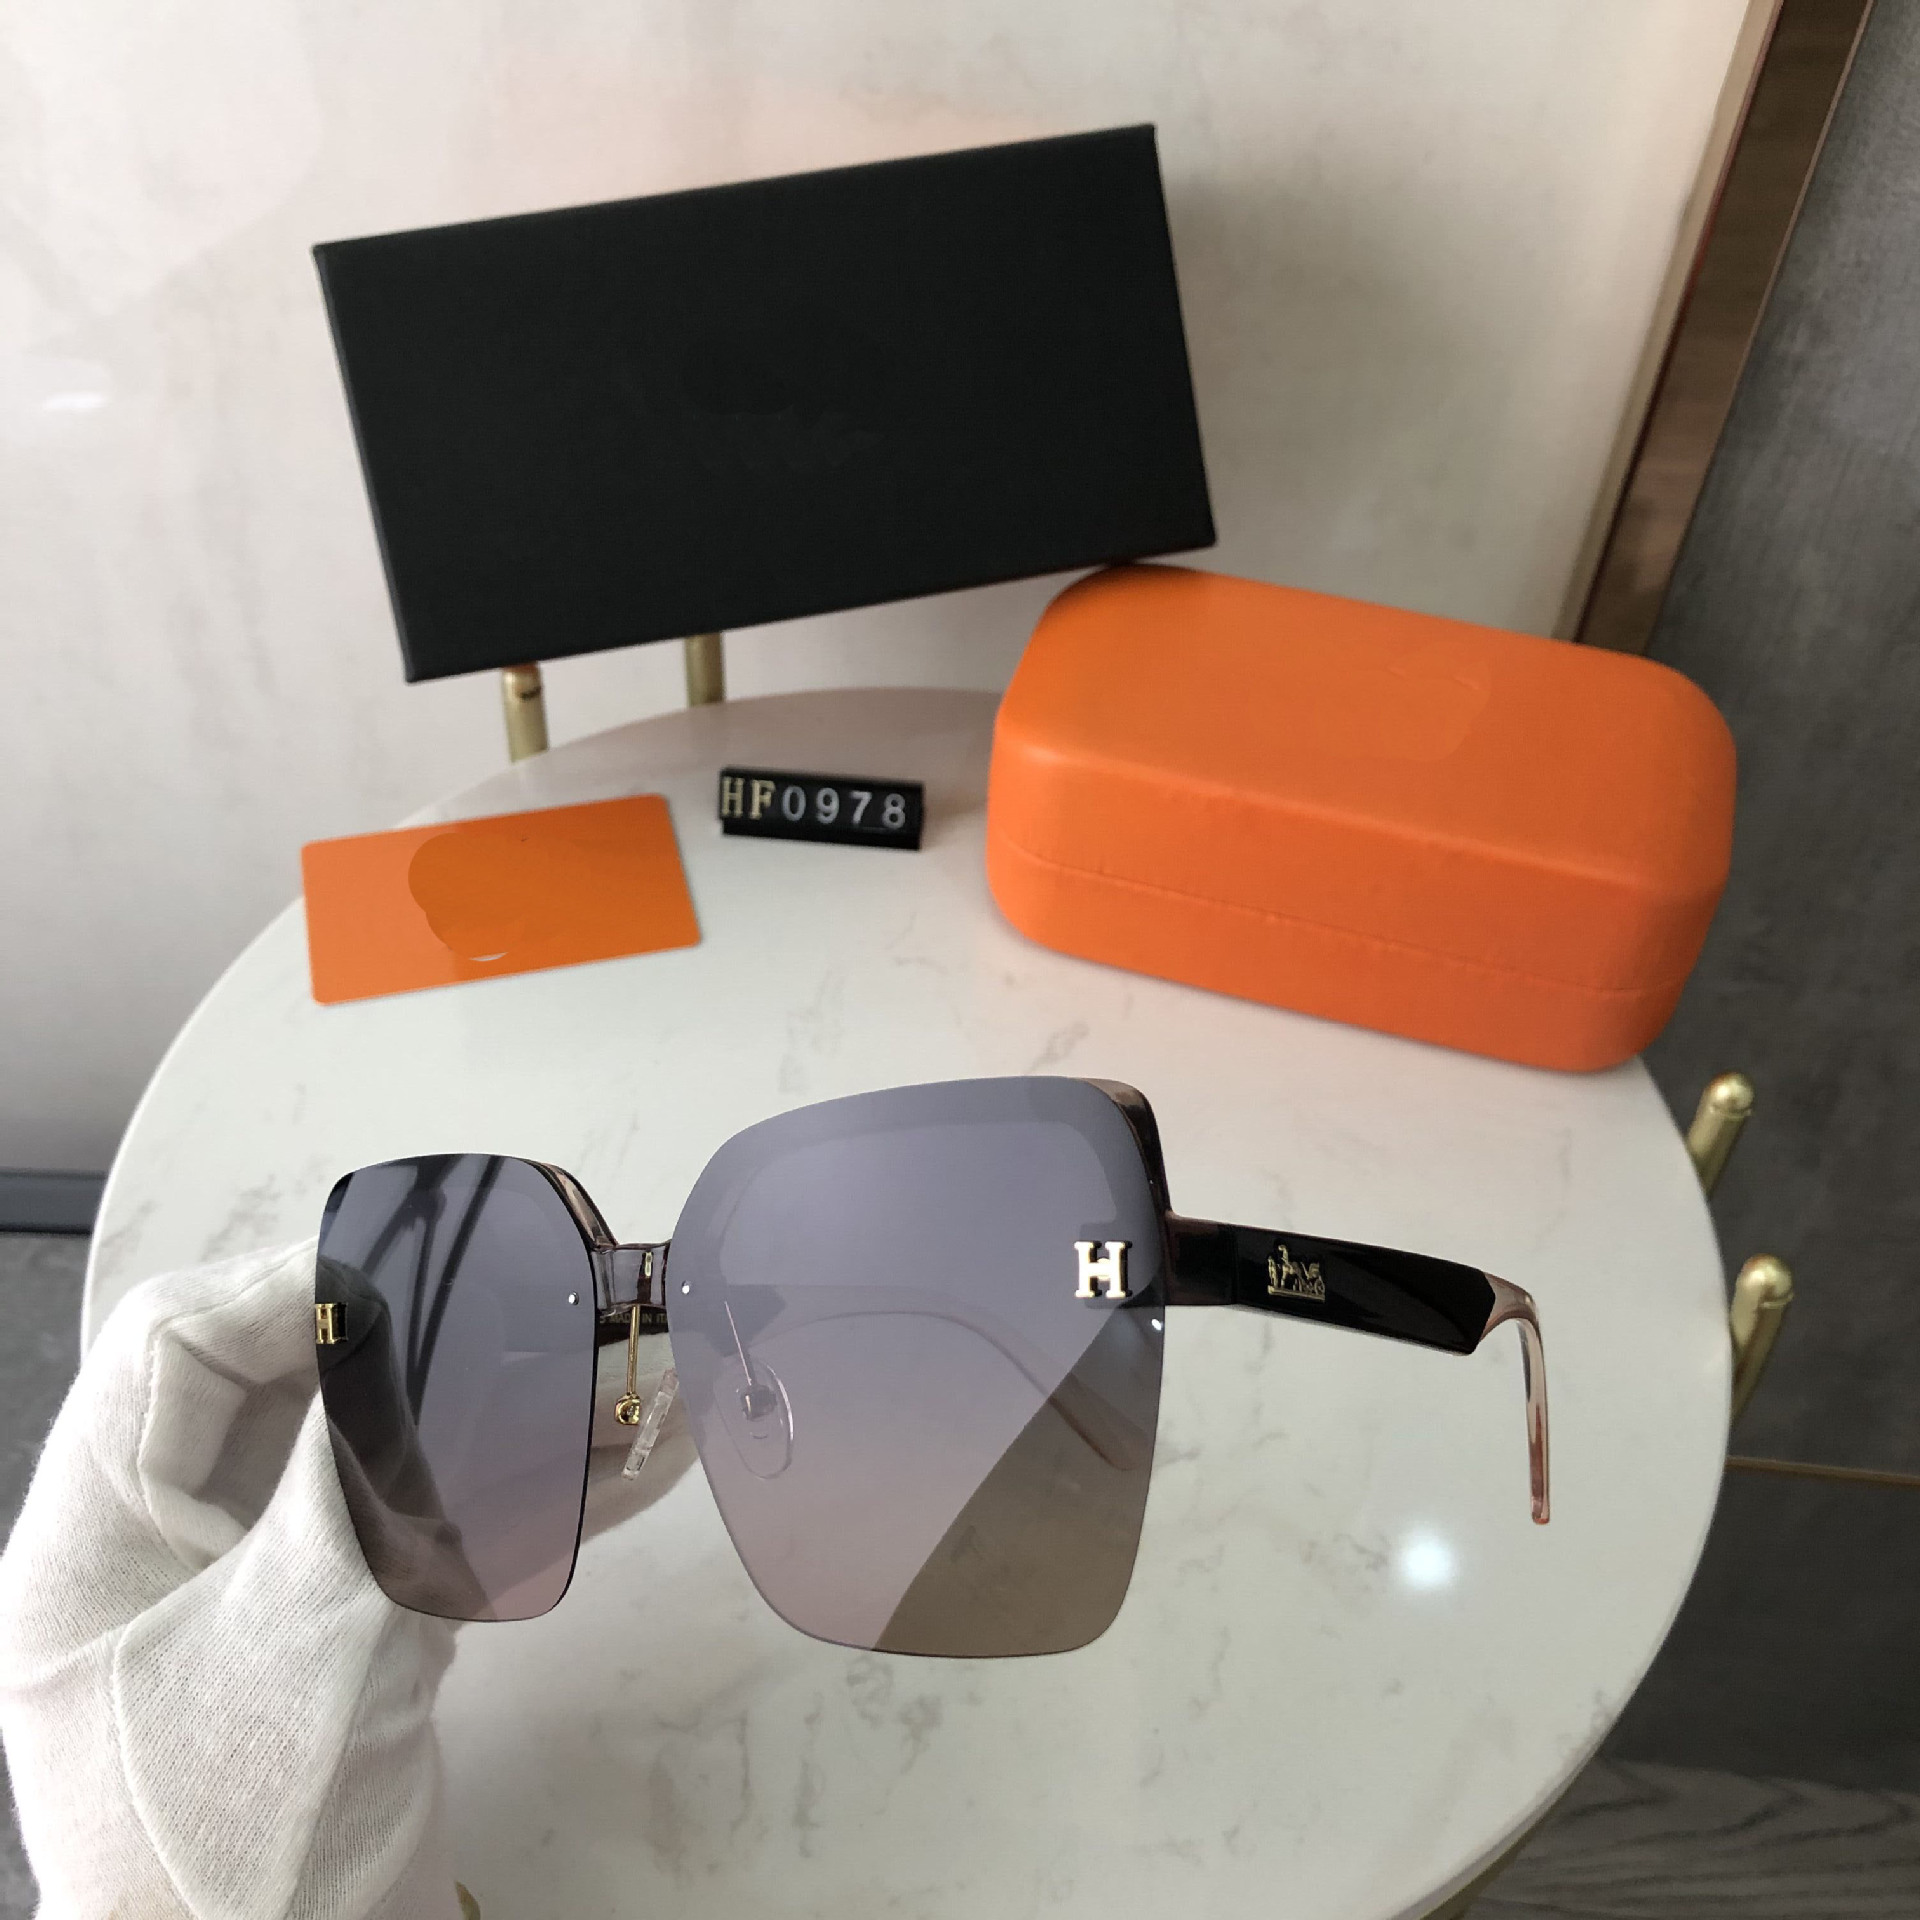 Sophisticated High-End Polarized Sunglasses For Street Style Fashion